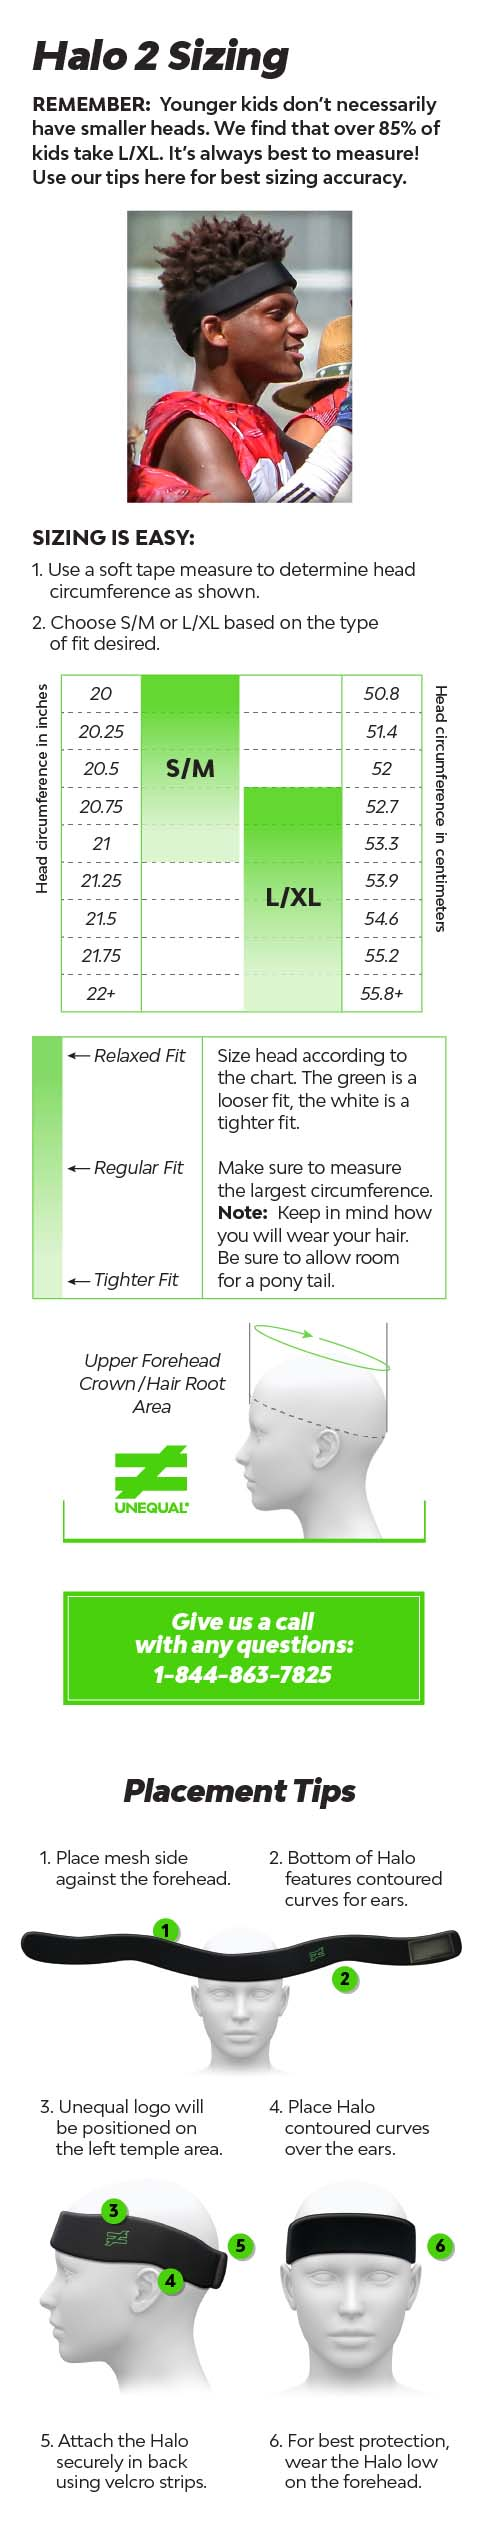 unequal-halo-2-top-impact-concussion-protection-sizing